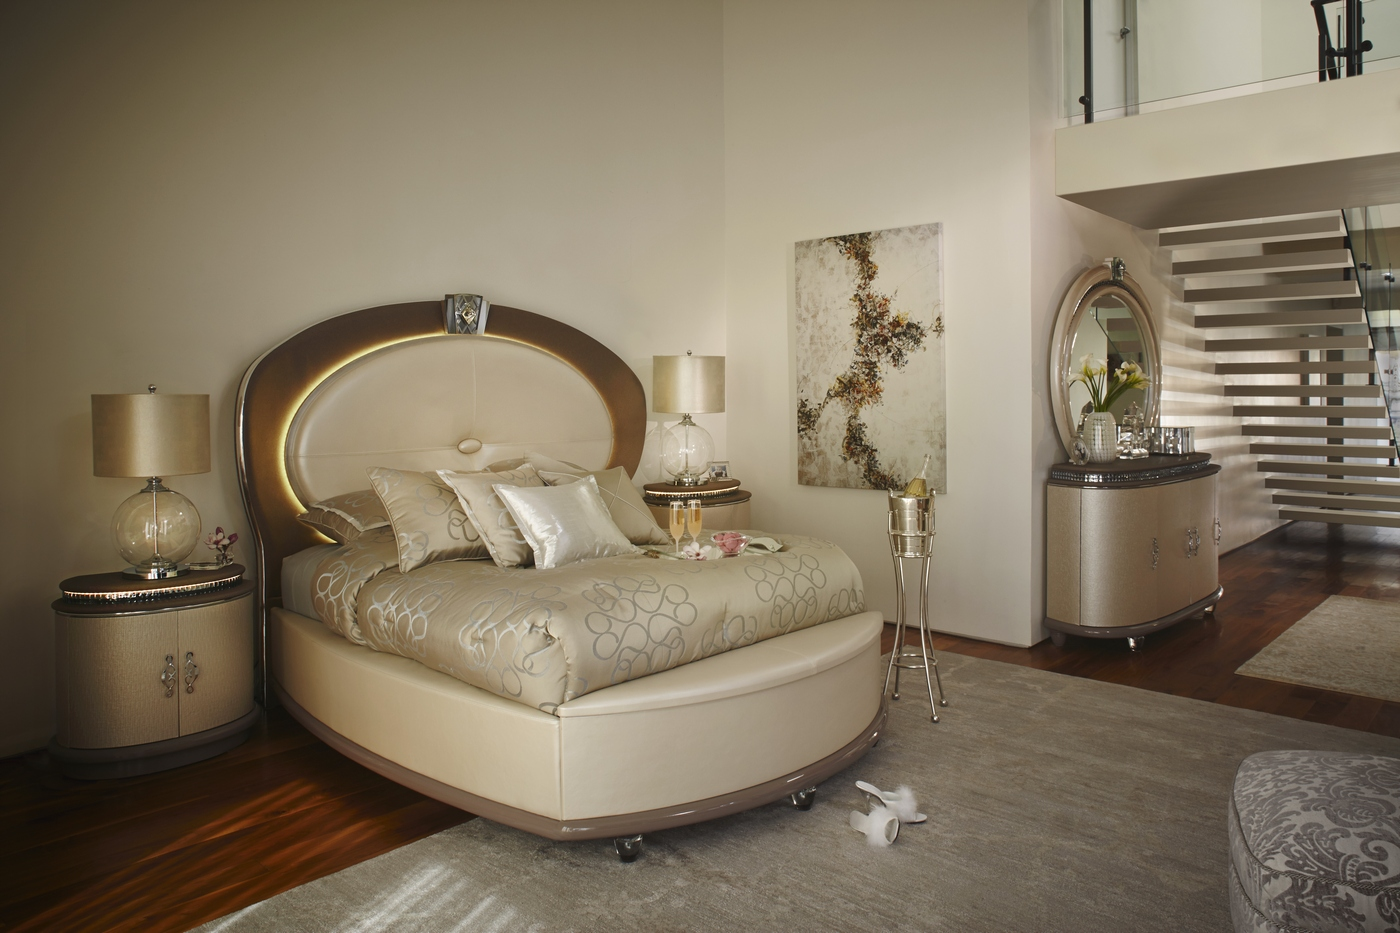 Overture glamour 4 piece king bedroom set in ivory pearl for 4 piece bedroom furniture set